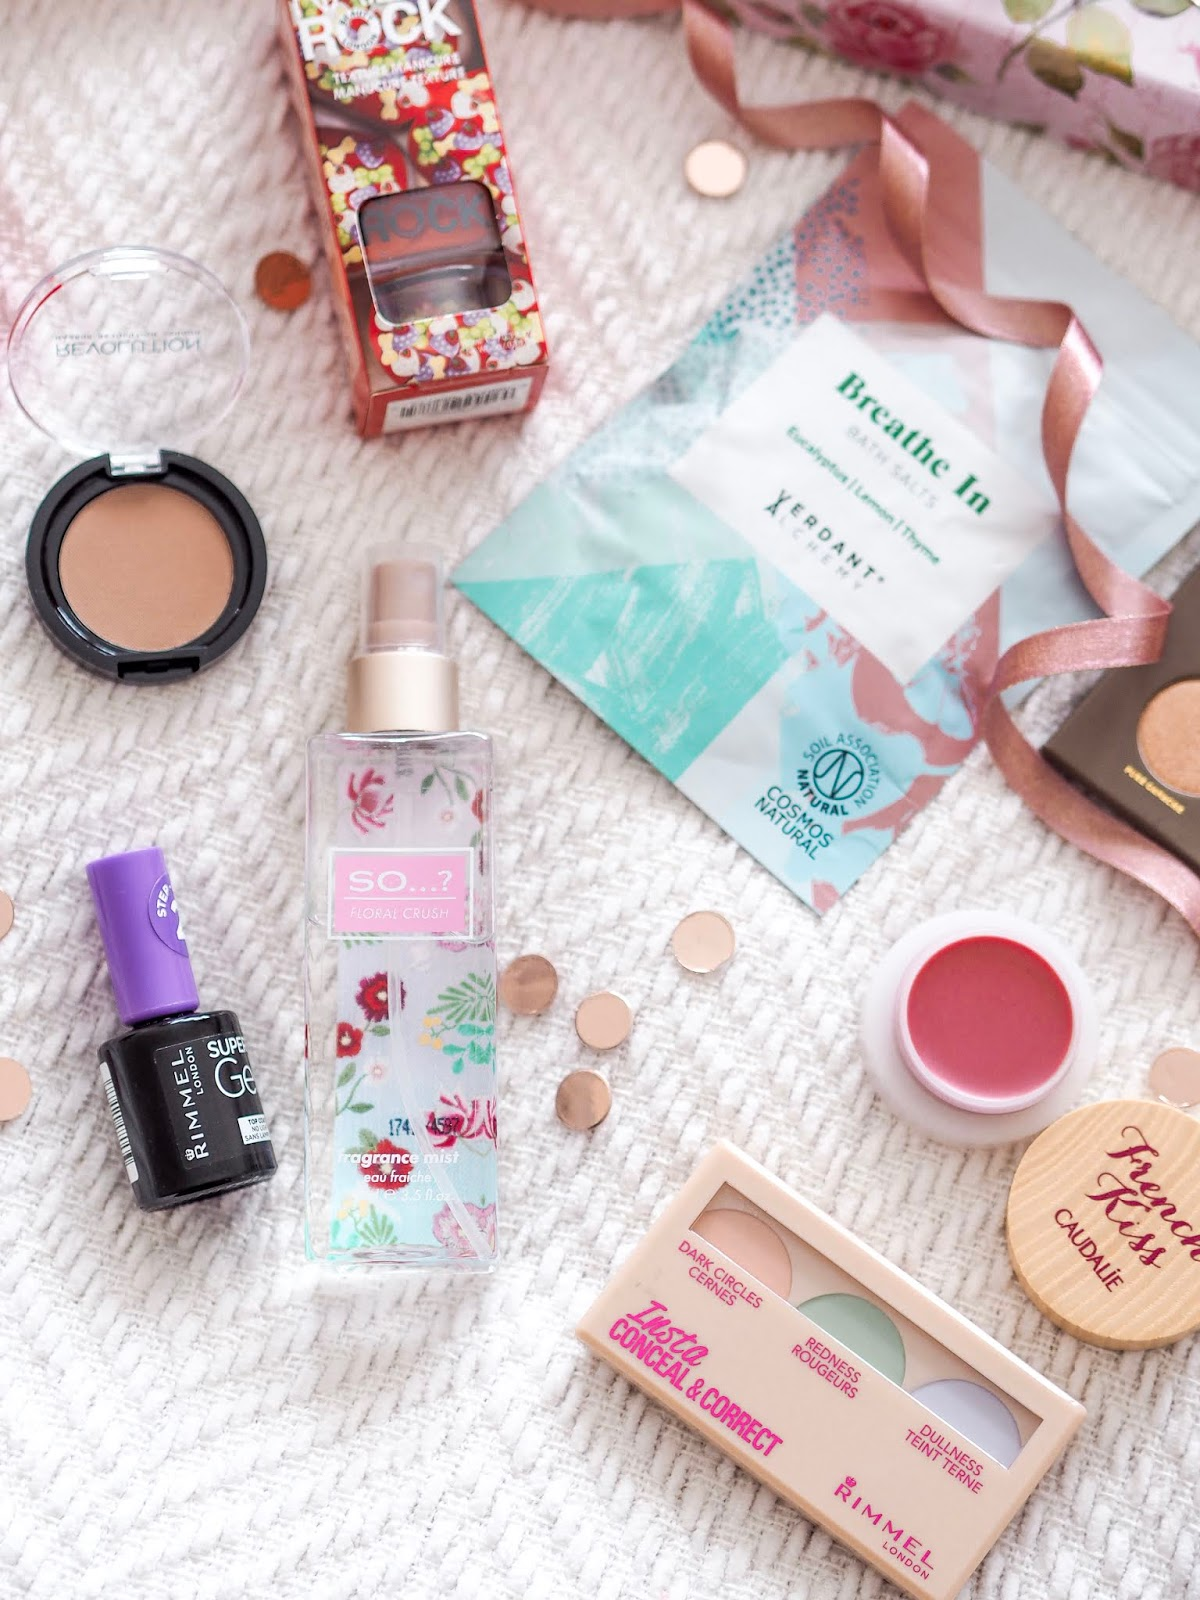 Mega May Day Giveaway!, UK Blogger, UK Giveaway, Competition, Beauty Giveaway, Makeup Giveaway, Katie Kirk Loves, Make Up Blogger, Beauty Blogger, Win This, Prize Draw, Blogger Giveaway